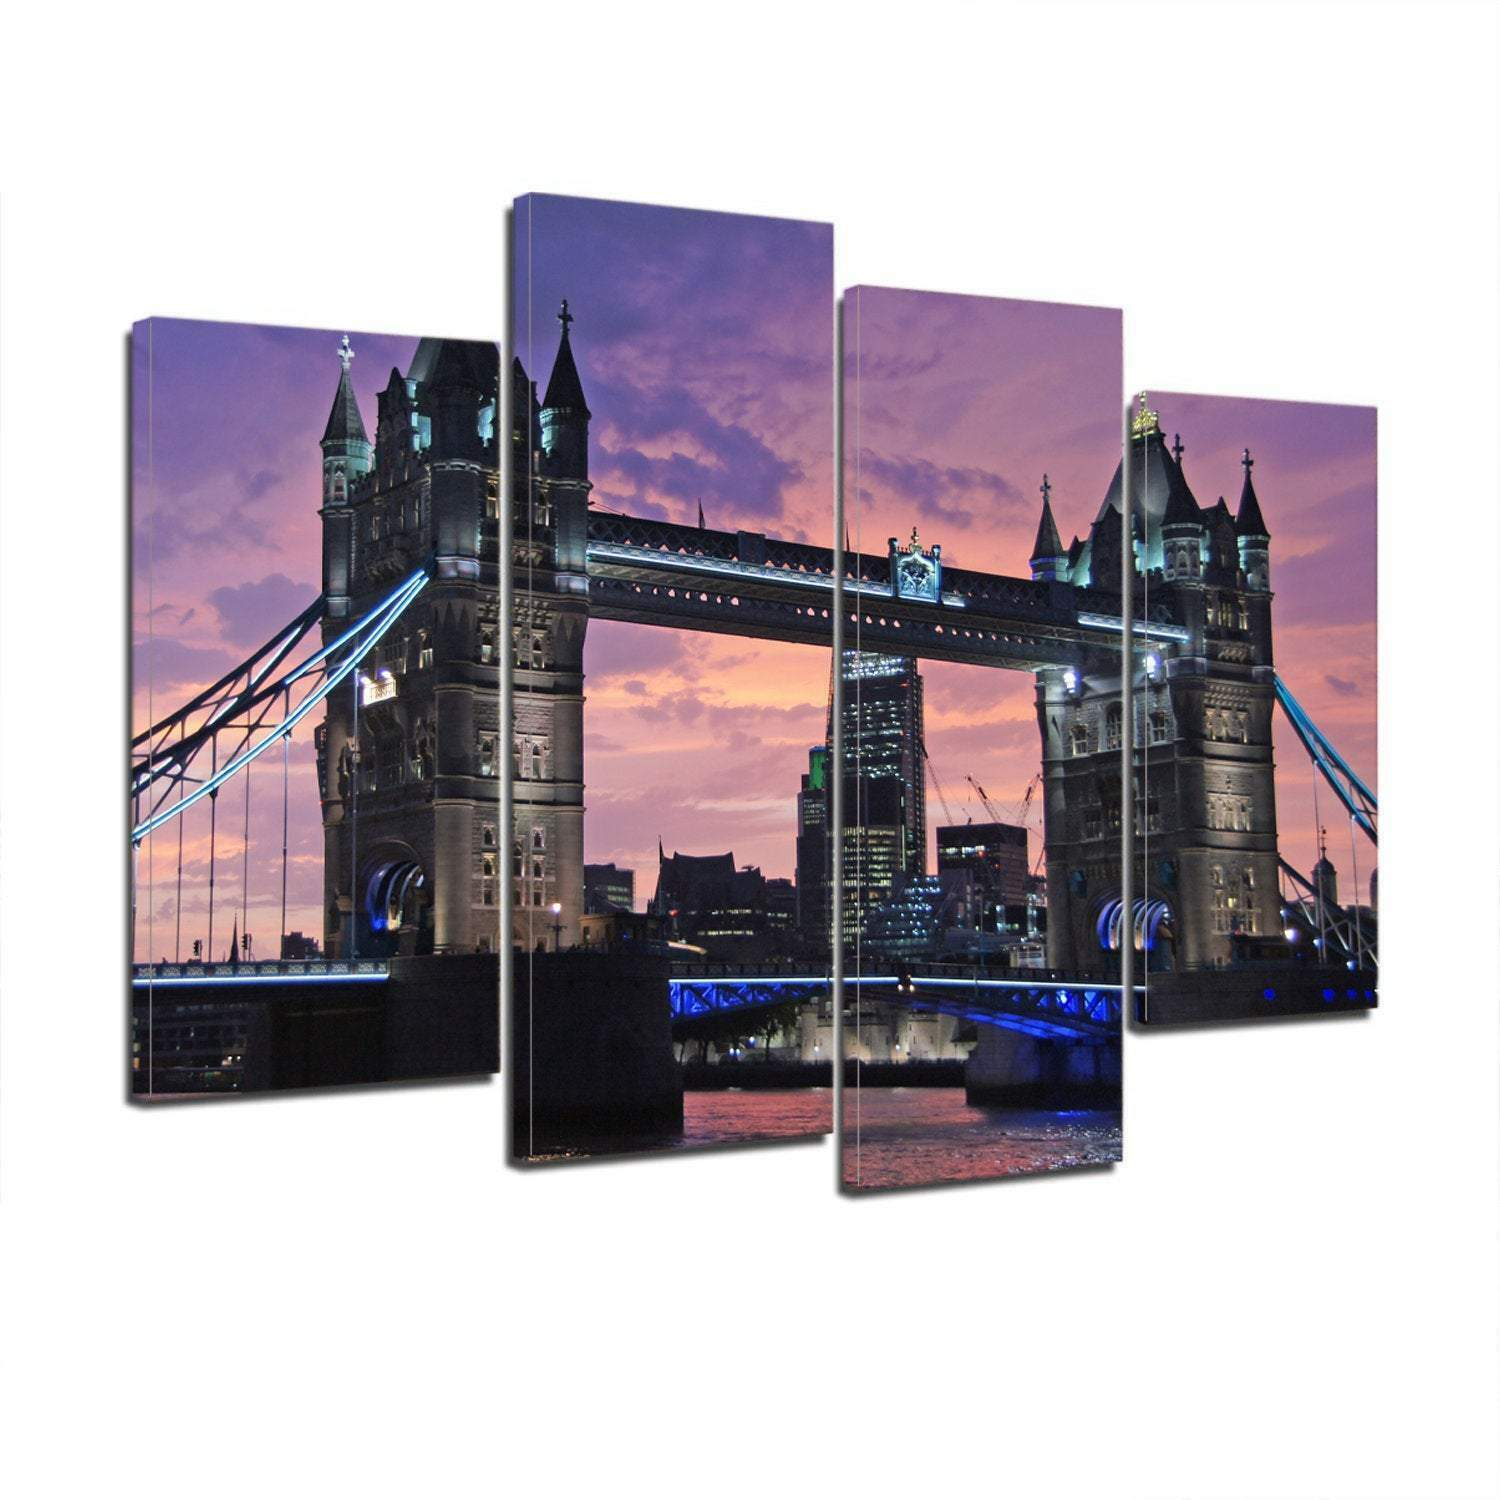 London Bridge England 4 Piece Canvas Wall Art Image Pictures Of London Wallpaper